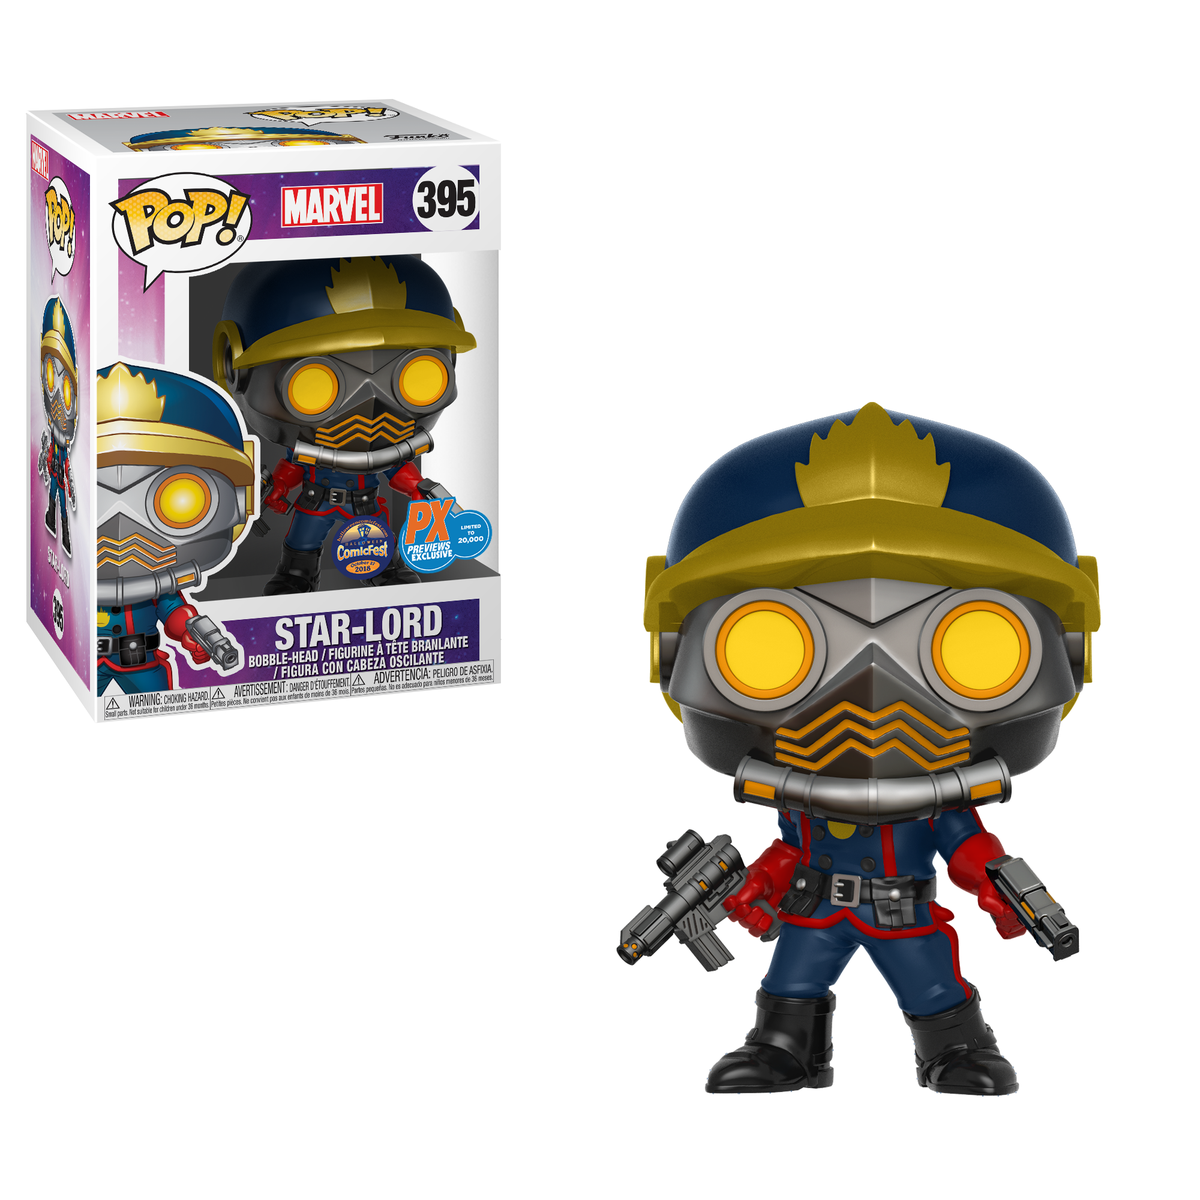 Replying to @OriginalFunko: RT & follow @OriginalFunko for the chance to win a Previews exclusive Star-Lord Pop!